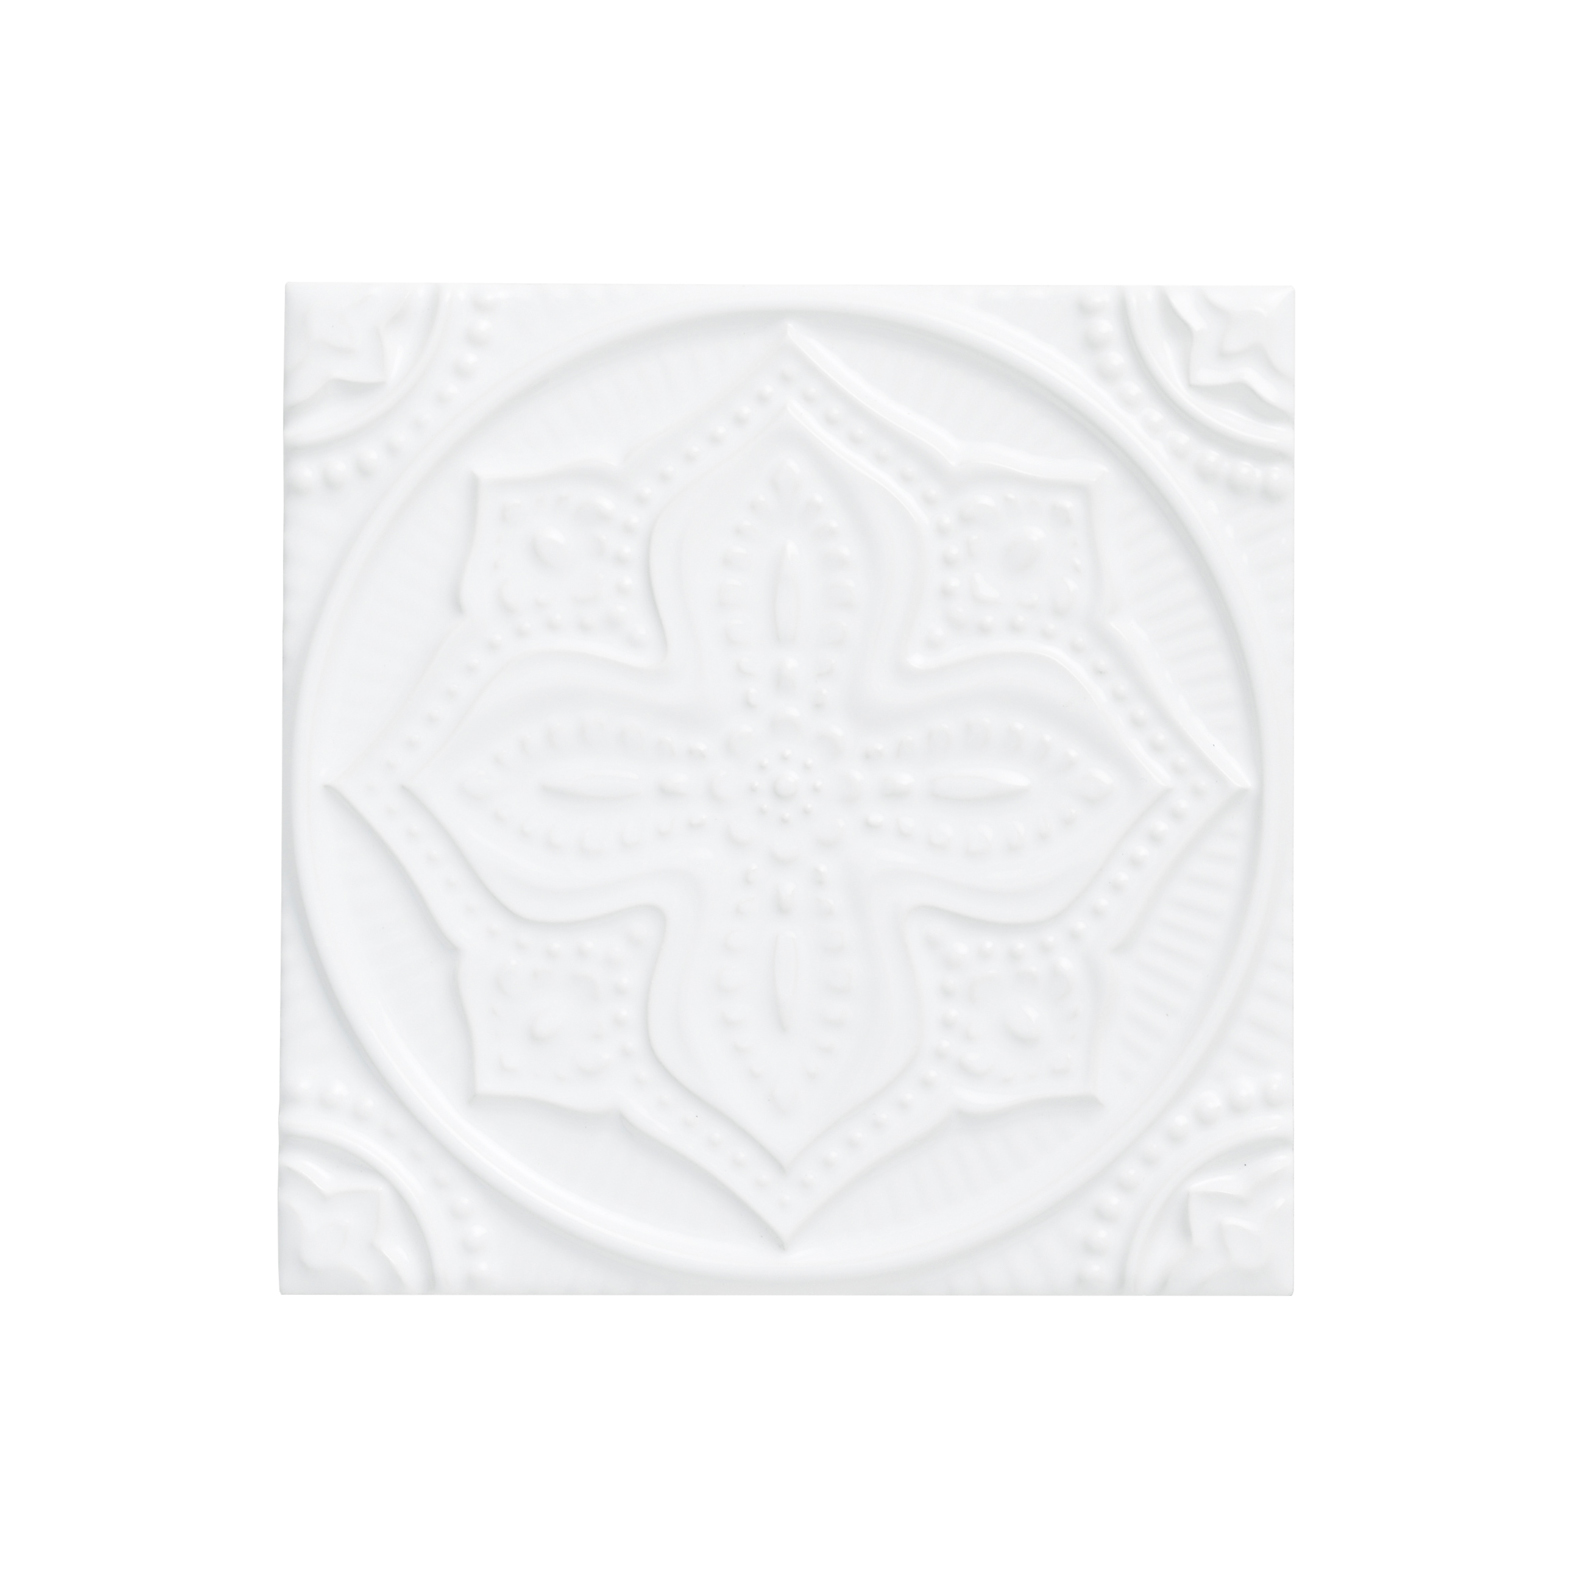 ADST4067 - RELIEVE MANDALA PLANET - 14.8 cm X 14.8 cm